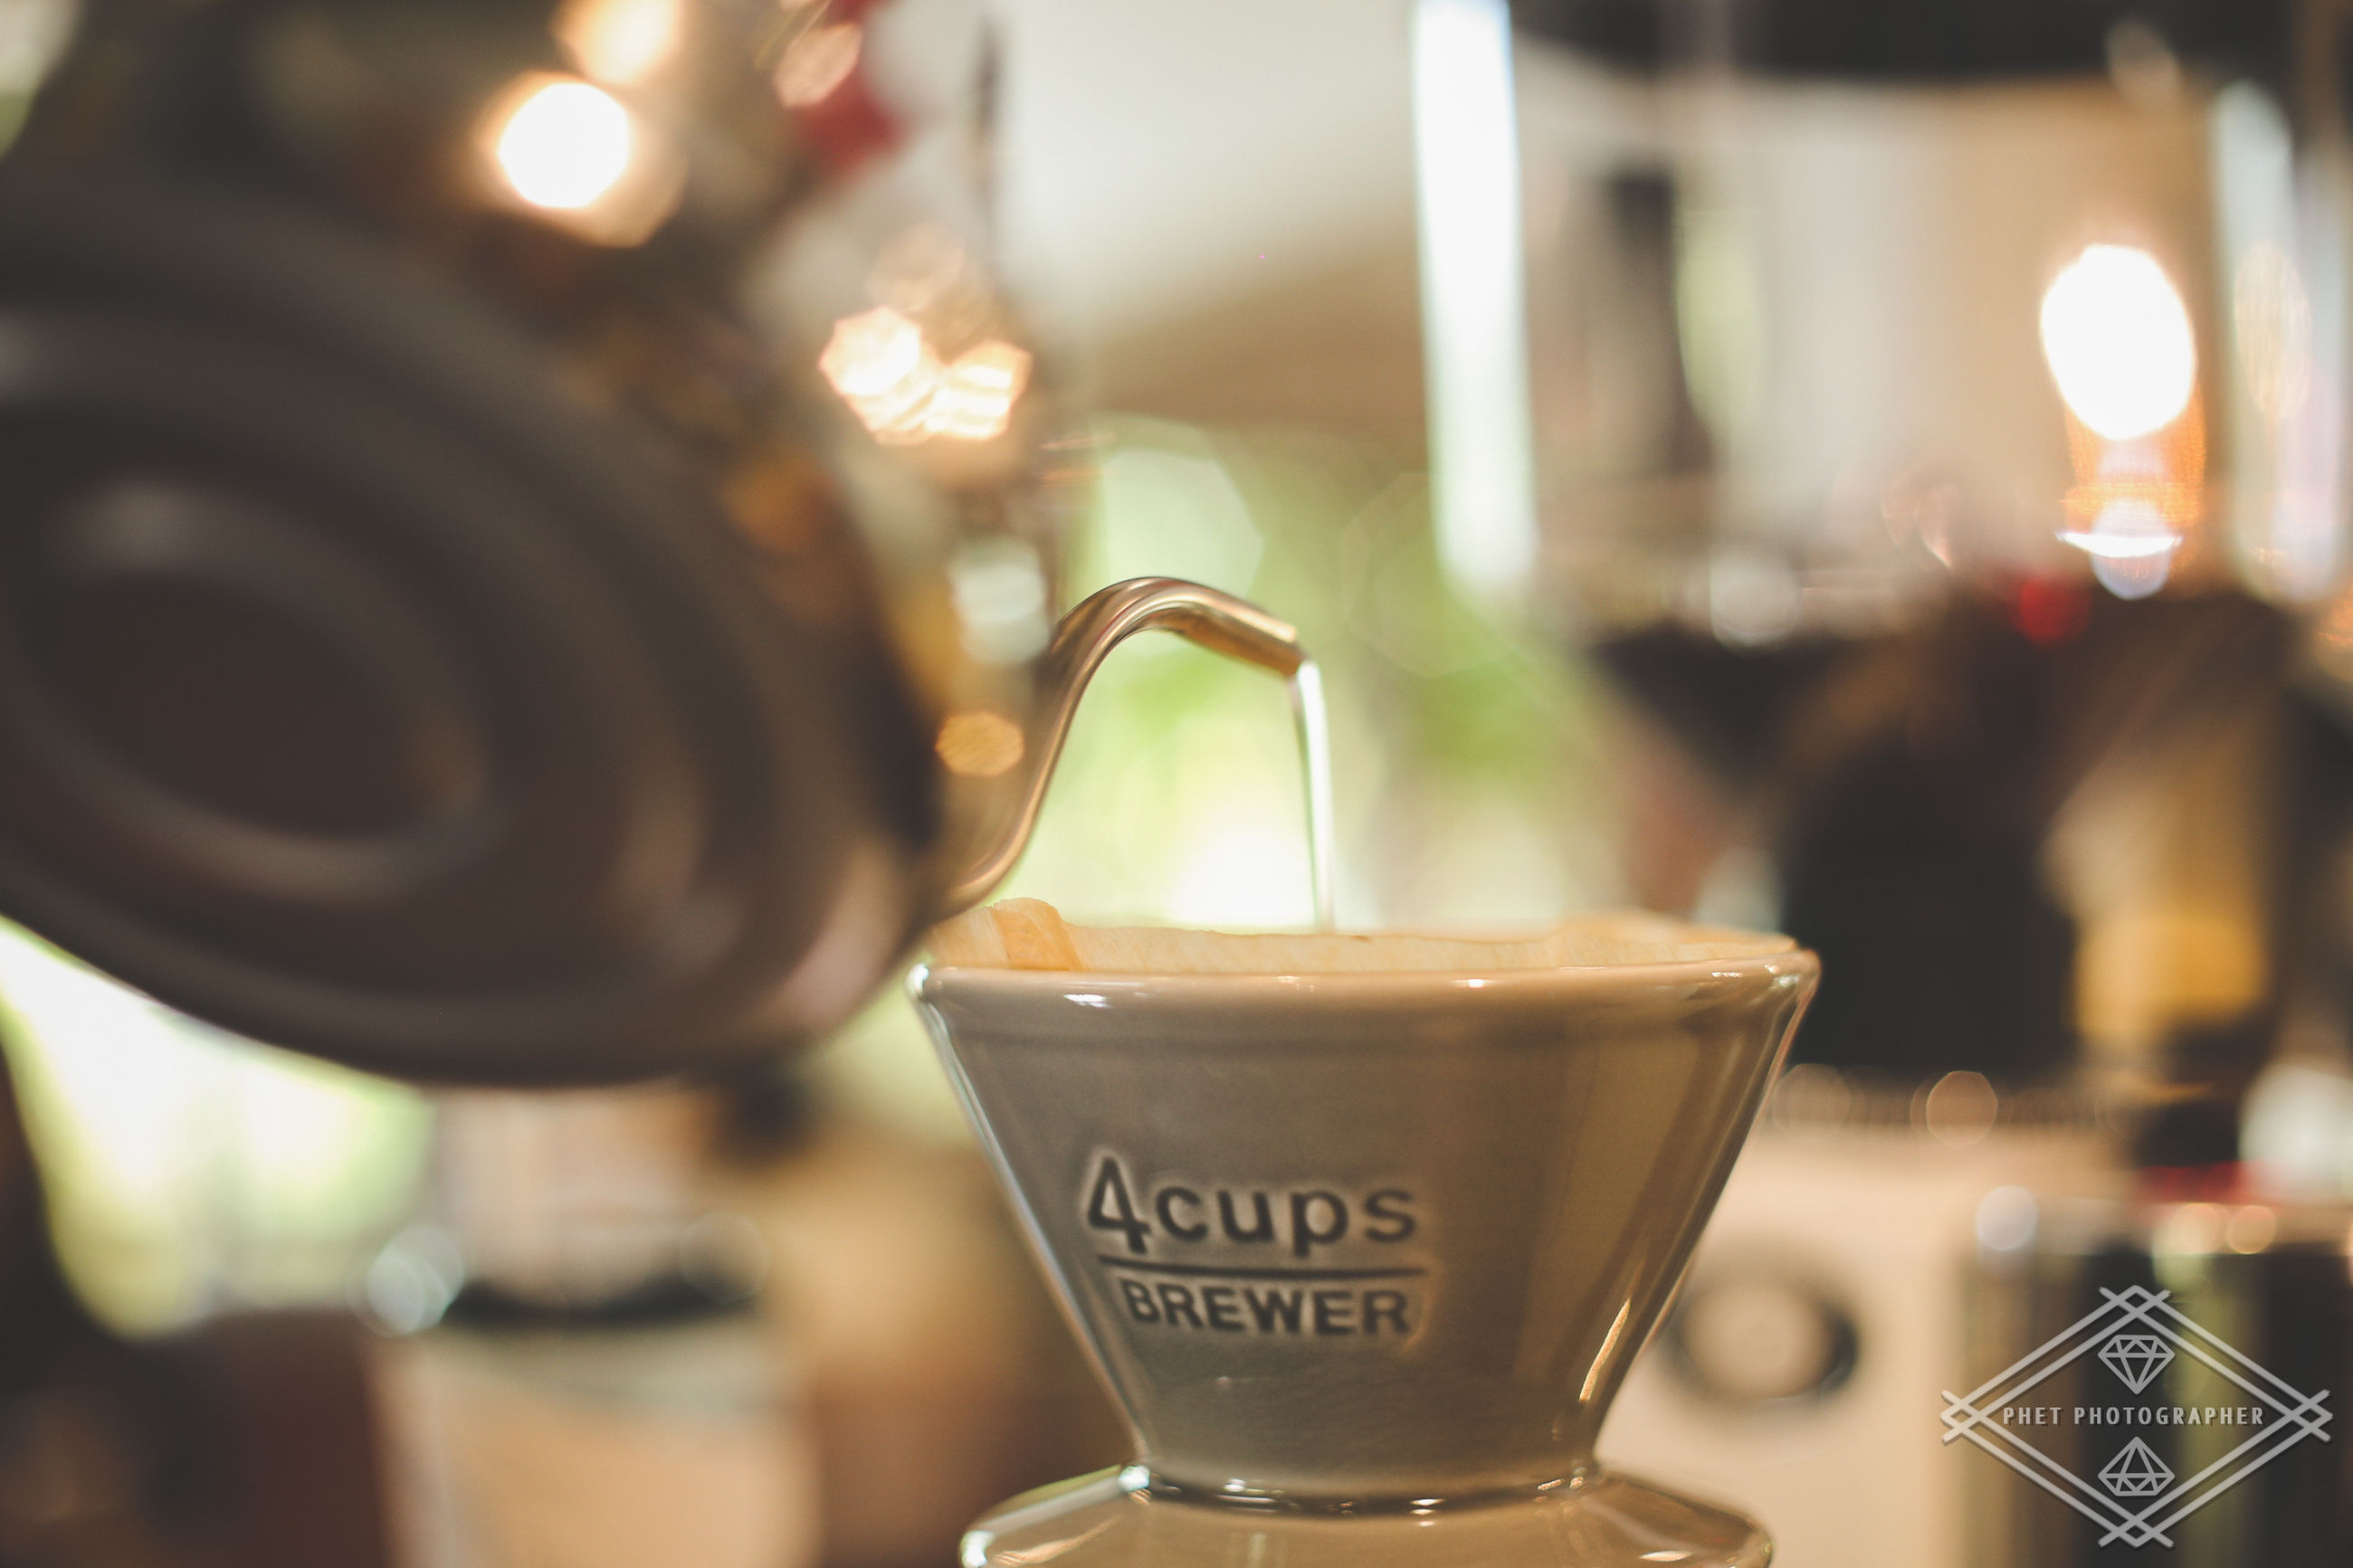 refreshment, drink, food and drink, freshness, frothy drink, coffee - drink, close-up, coffee cup, indoors, focus on foreground, non-alcoholic beverage, healthy eating, still life, hot drink, table, selective focus, beverage, espresso, serving size